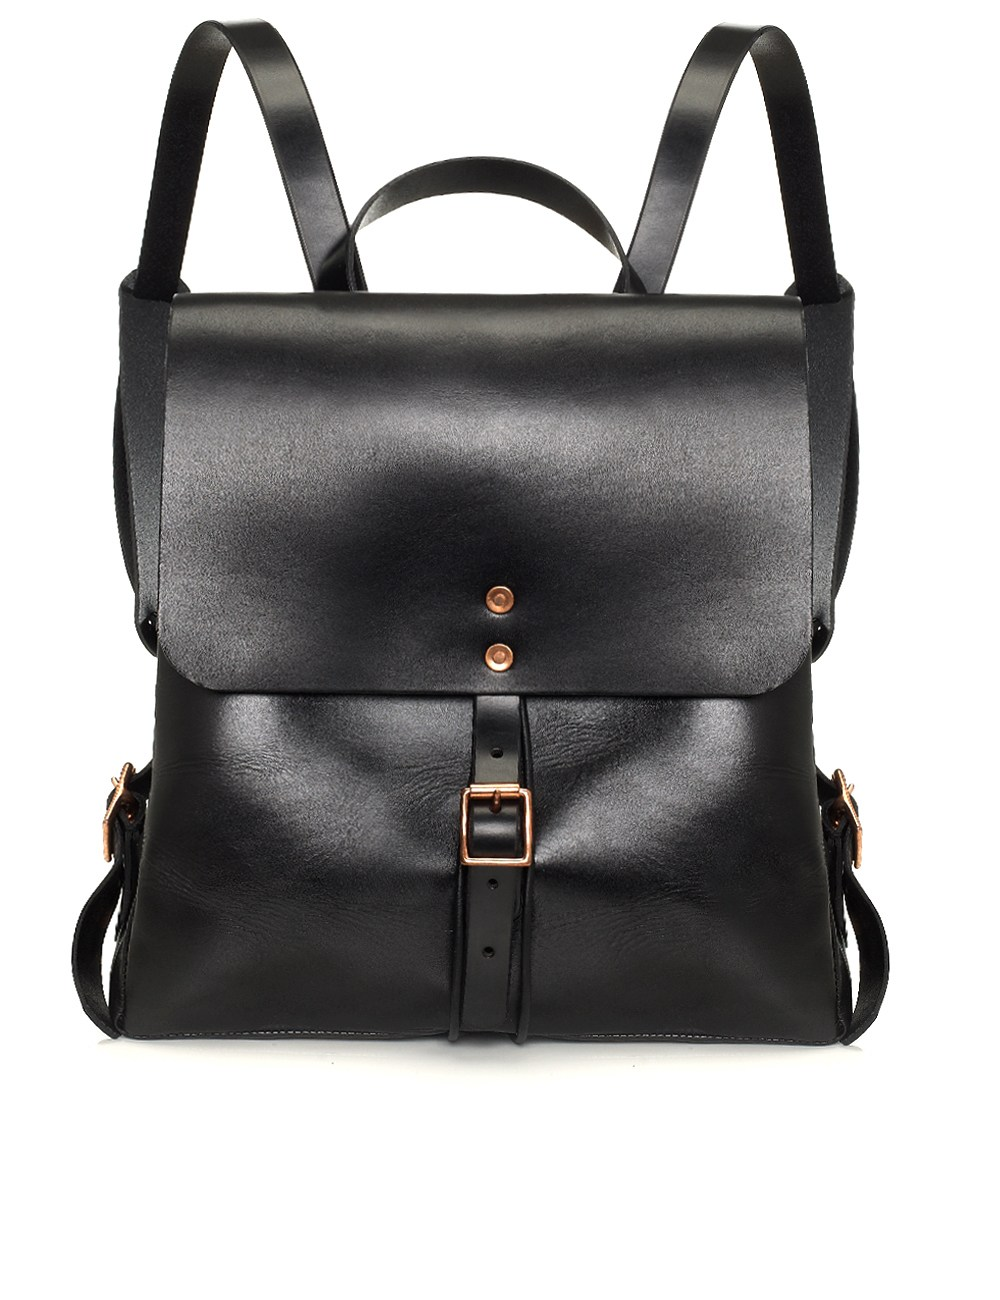 Black Leather Backpack Women OezBvR97